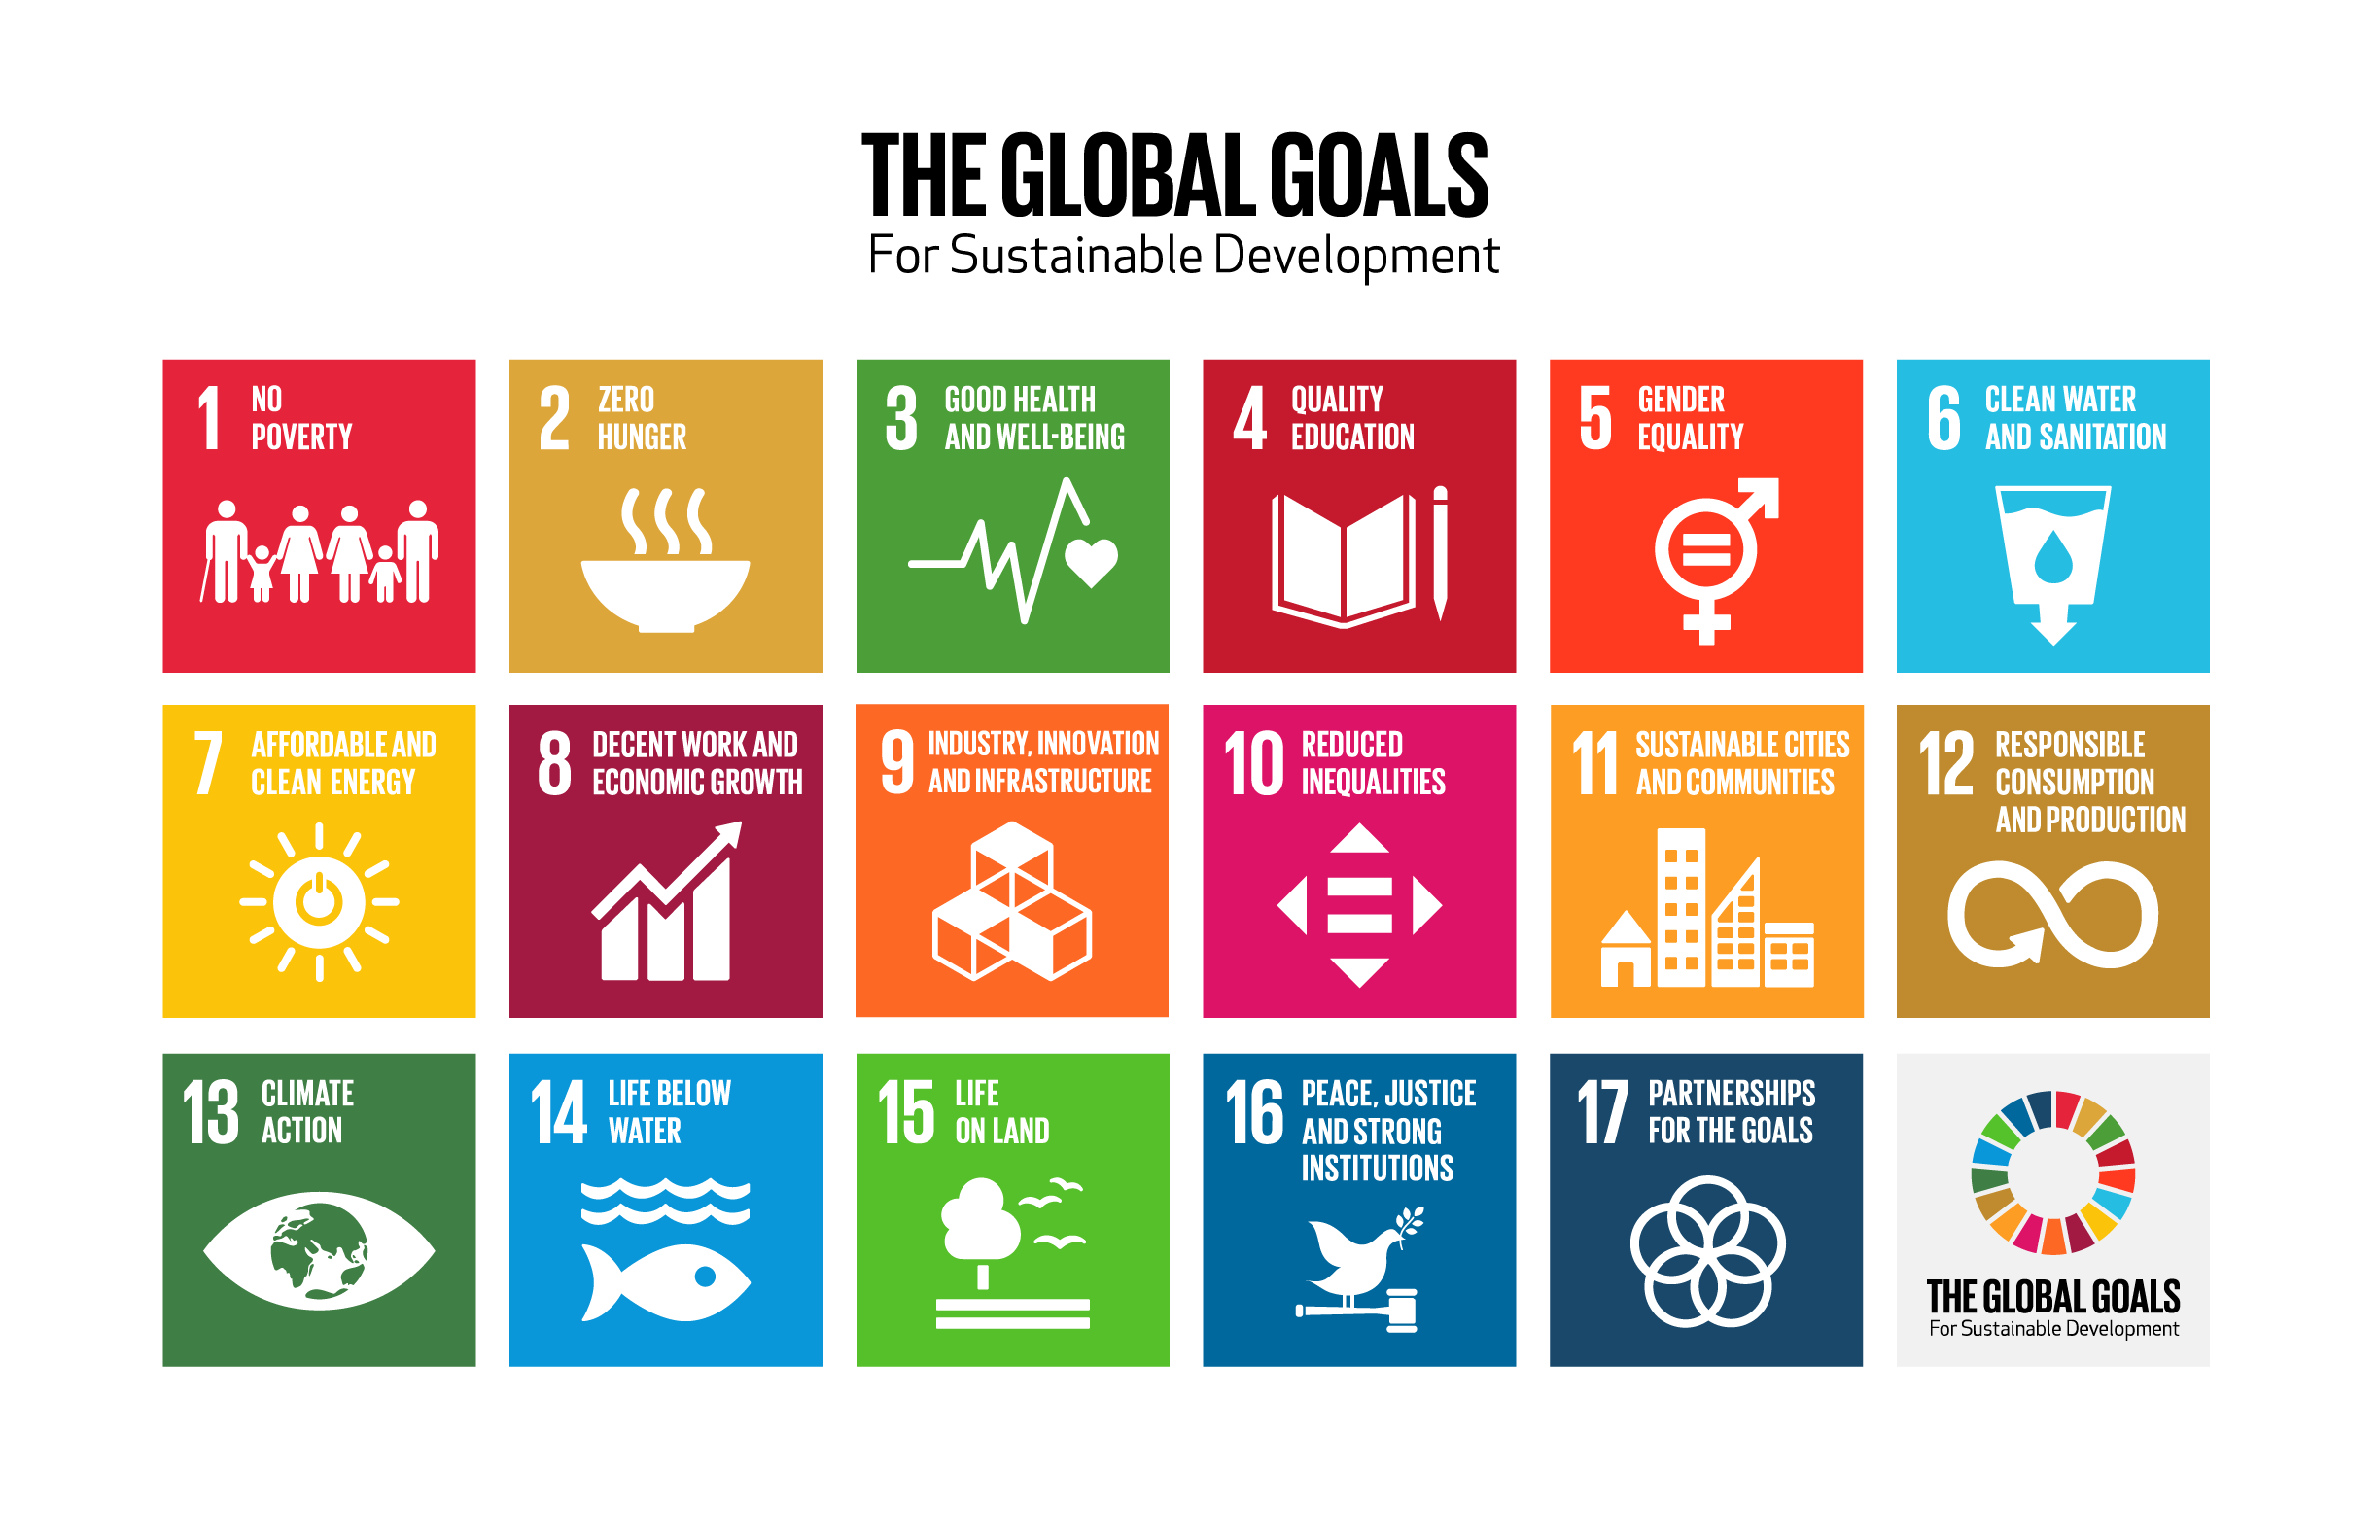 The 17 Sustainable Development Goals, or Global Goals.